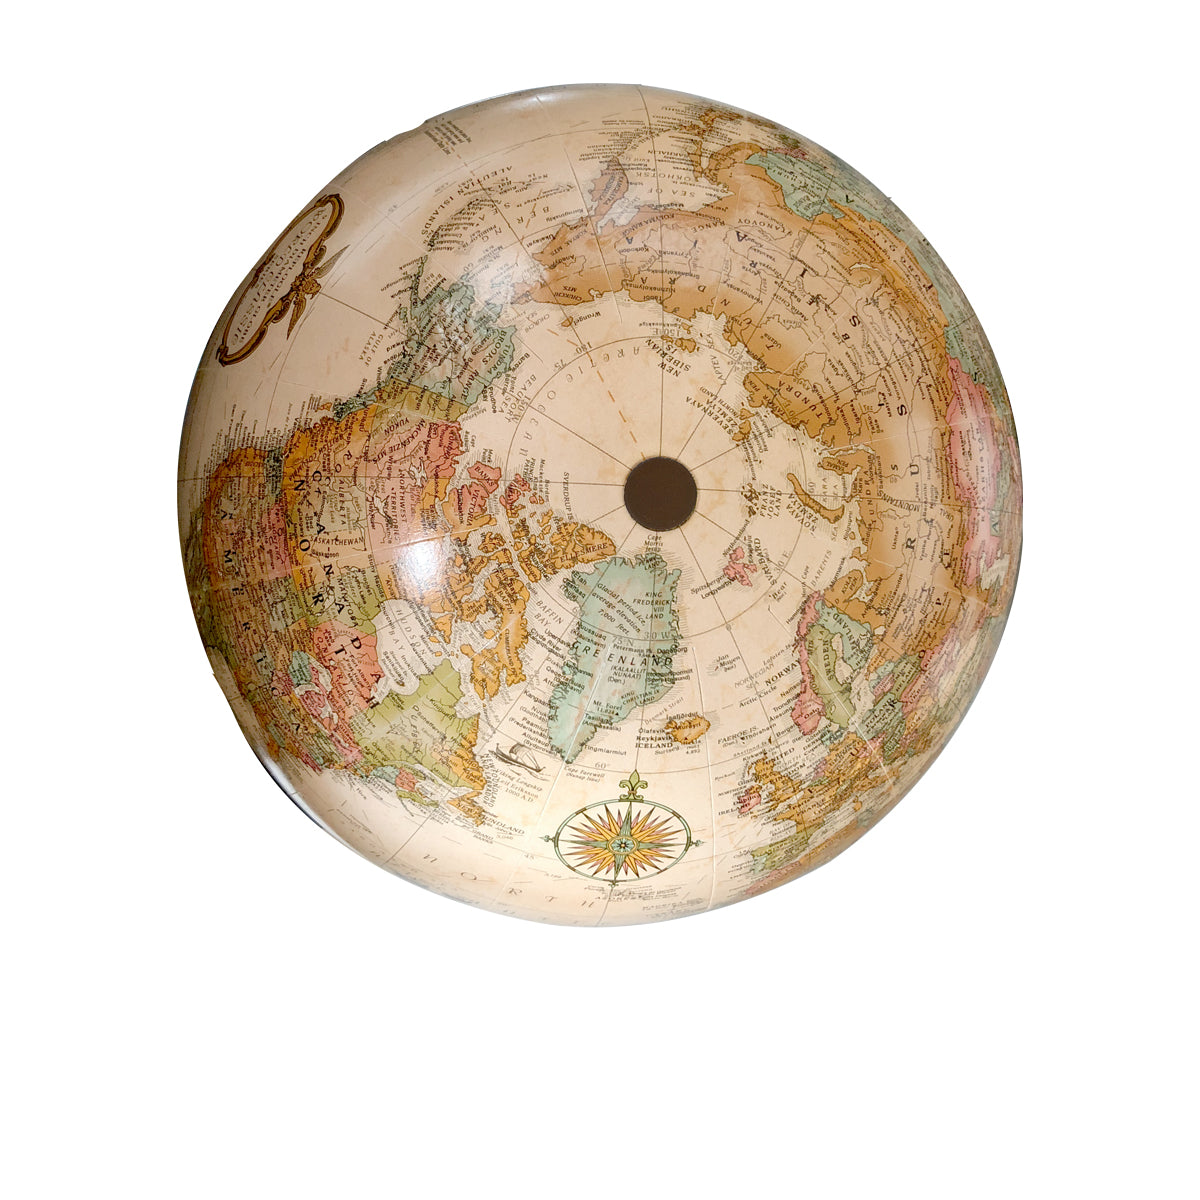 Small Antique Handheld World Globe- top view